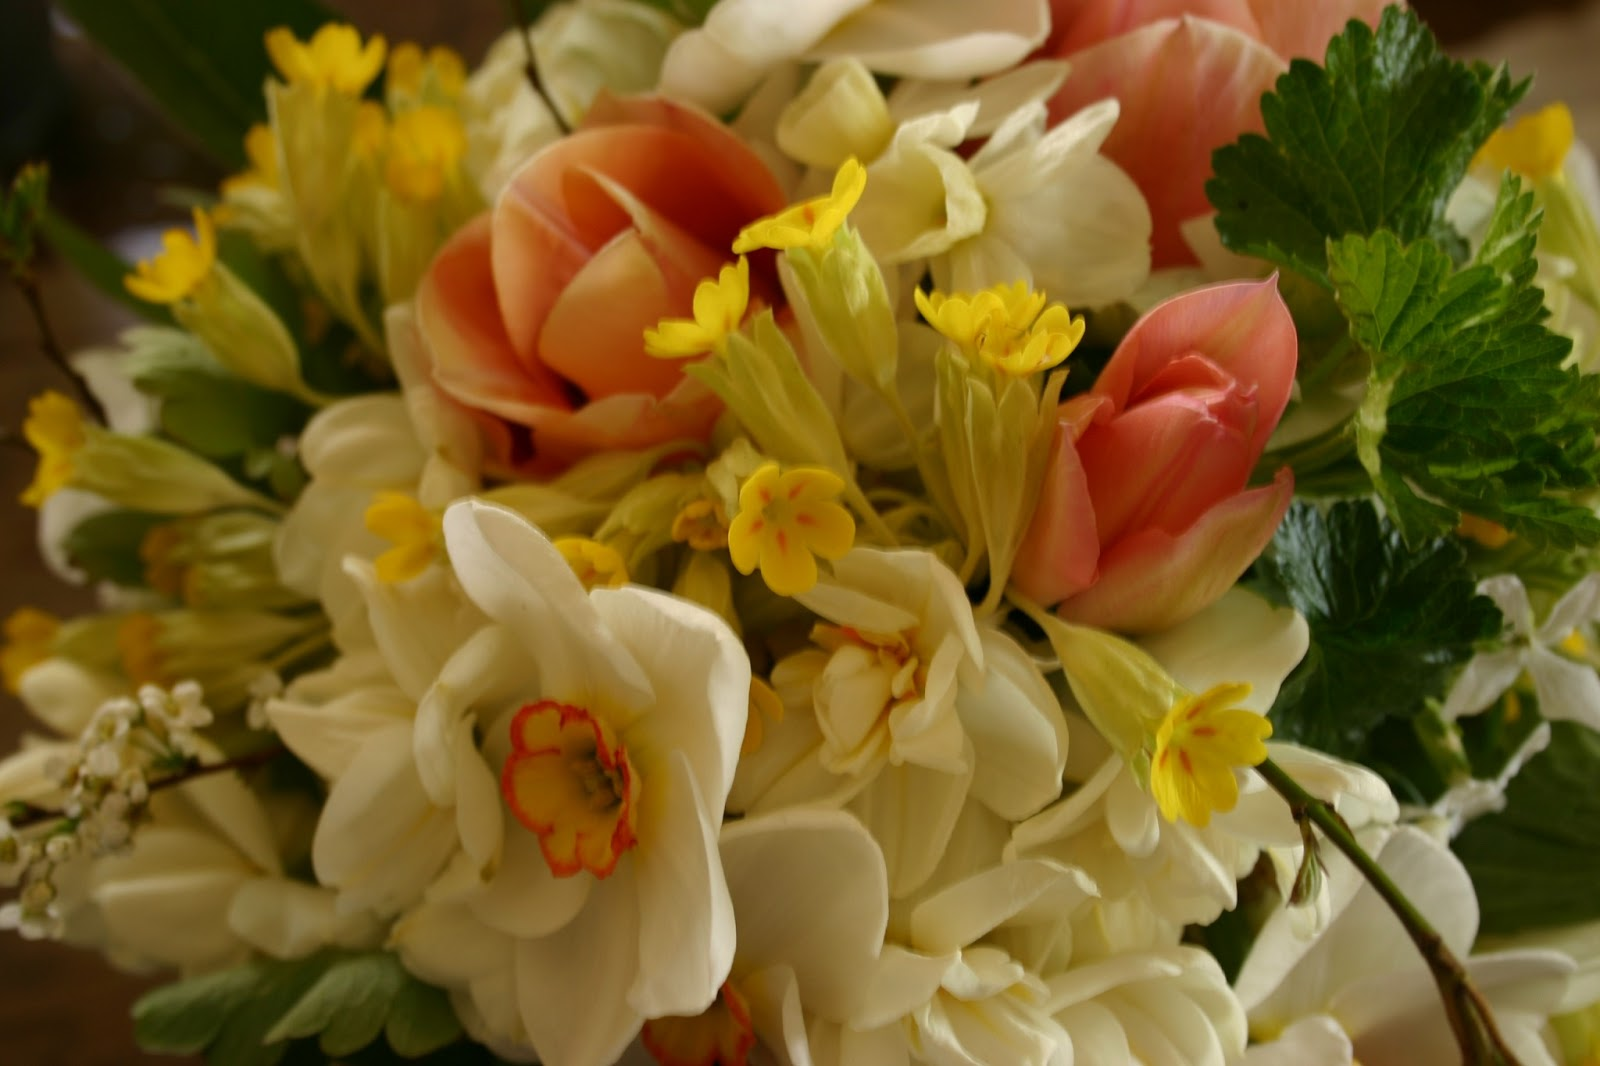 What we grow at common farm flowers common farm flowers the spring bouquet from common farm flowers dhlflorist Images